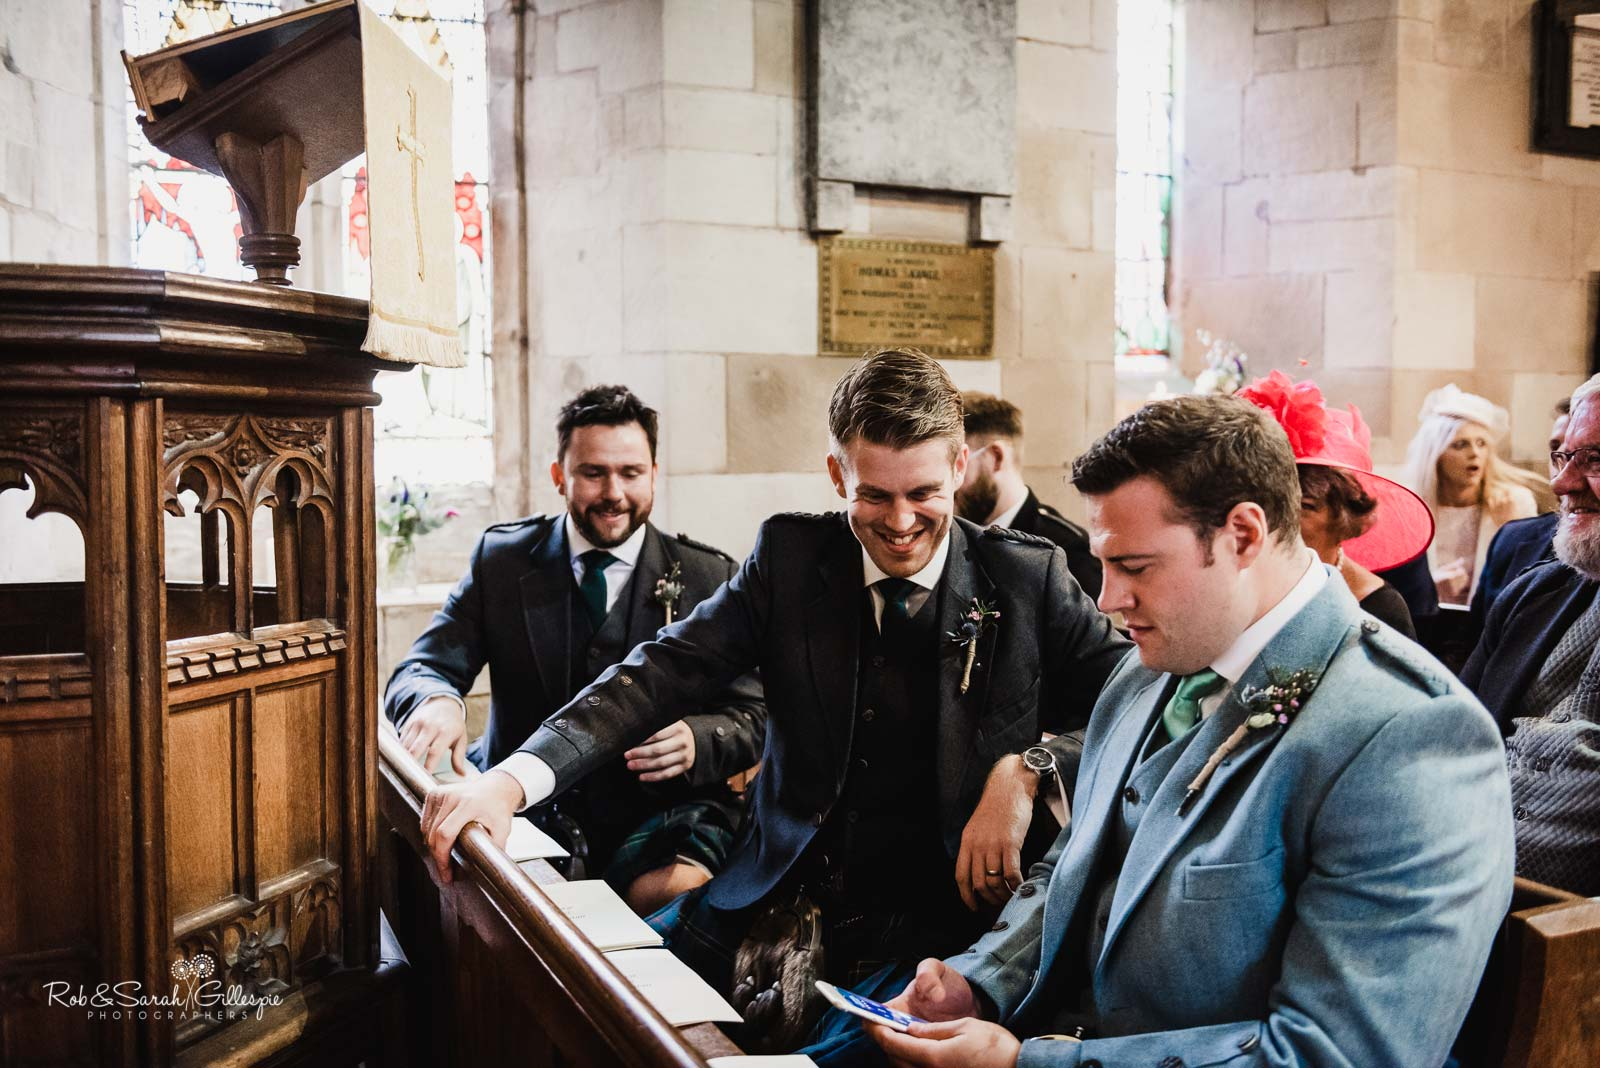 Groom chats with friends before wedding at St Giles church Packwood